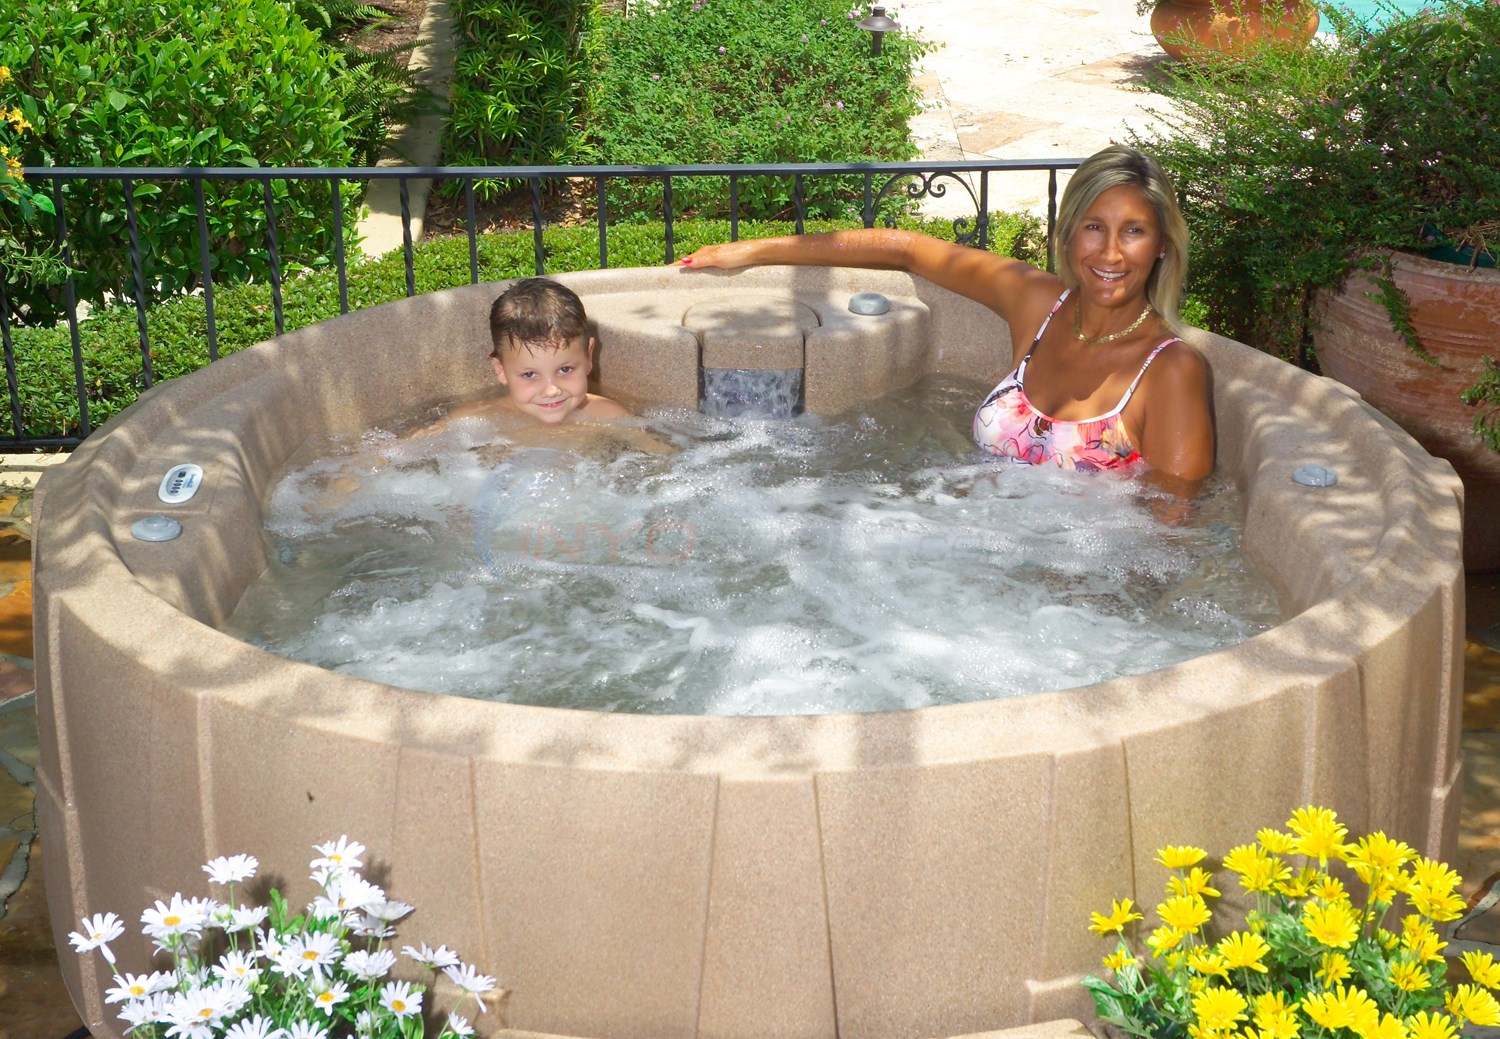 Blue Wave Bali 4 Person Spa - Sandstone - NP5810